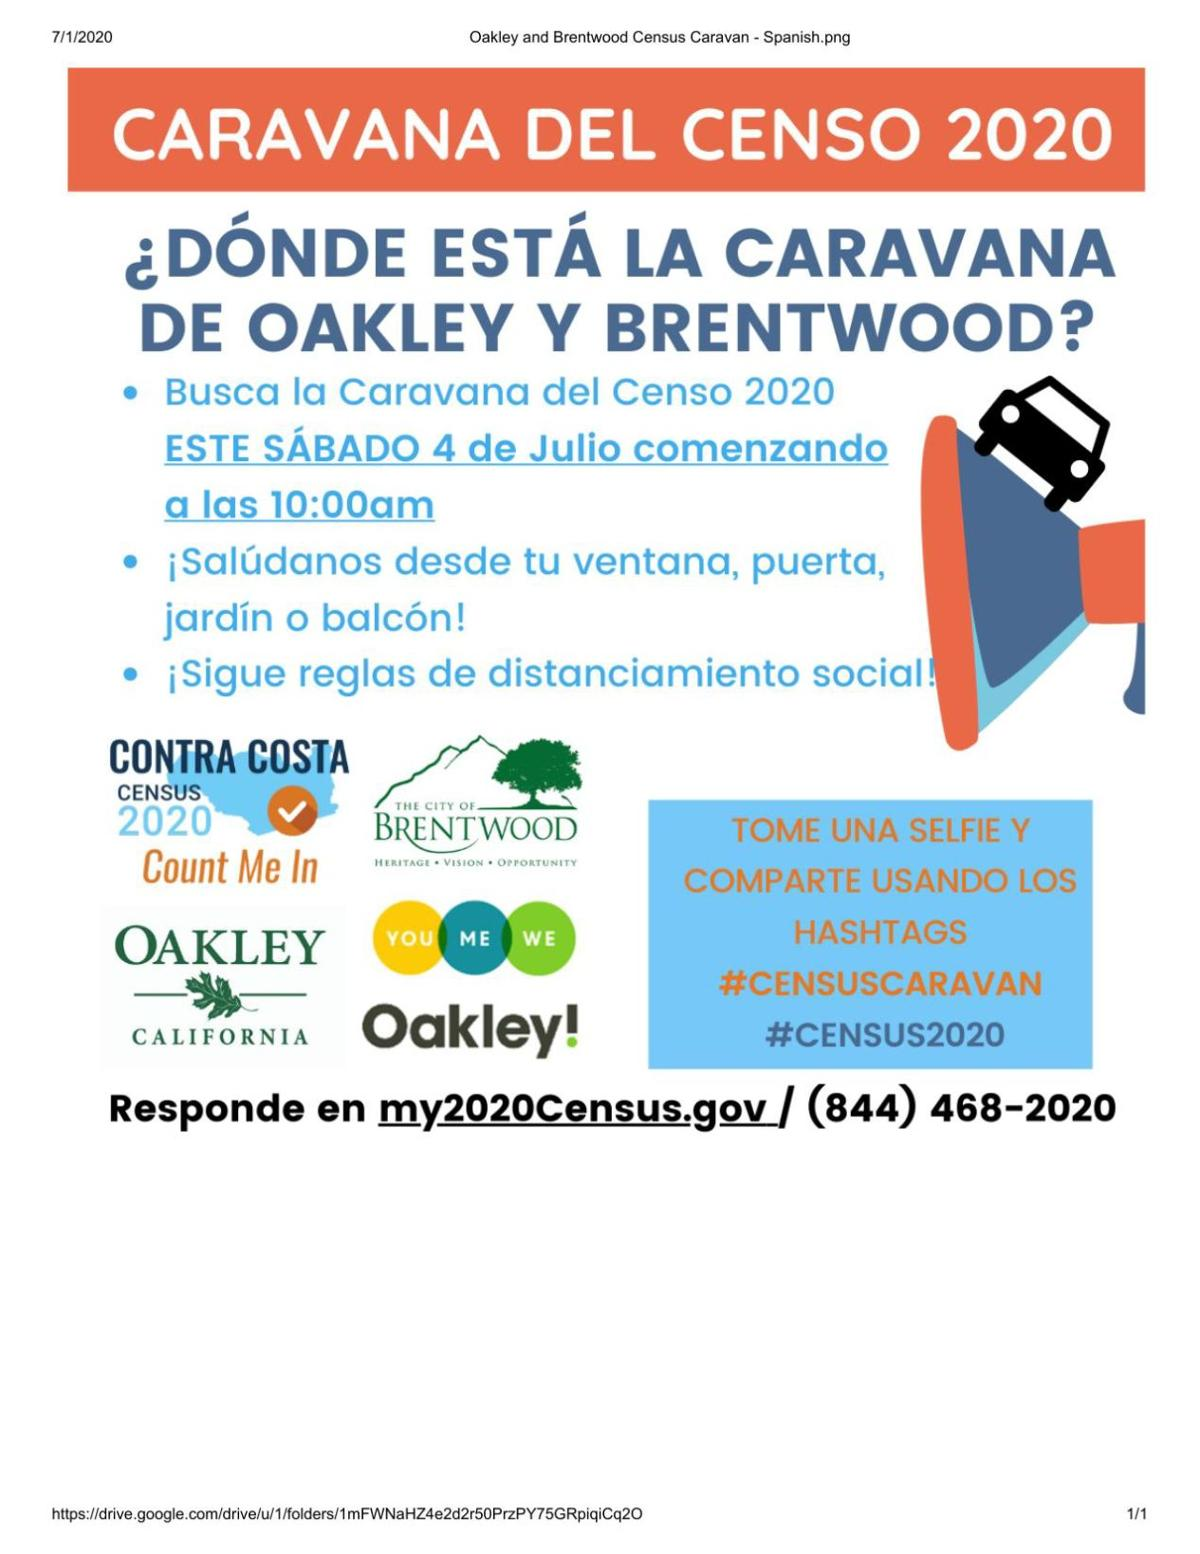 Oakley to Brentwood Census Caravan_Spanish version